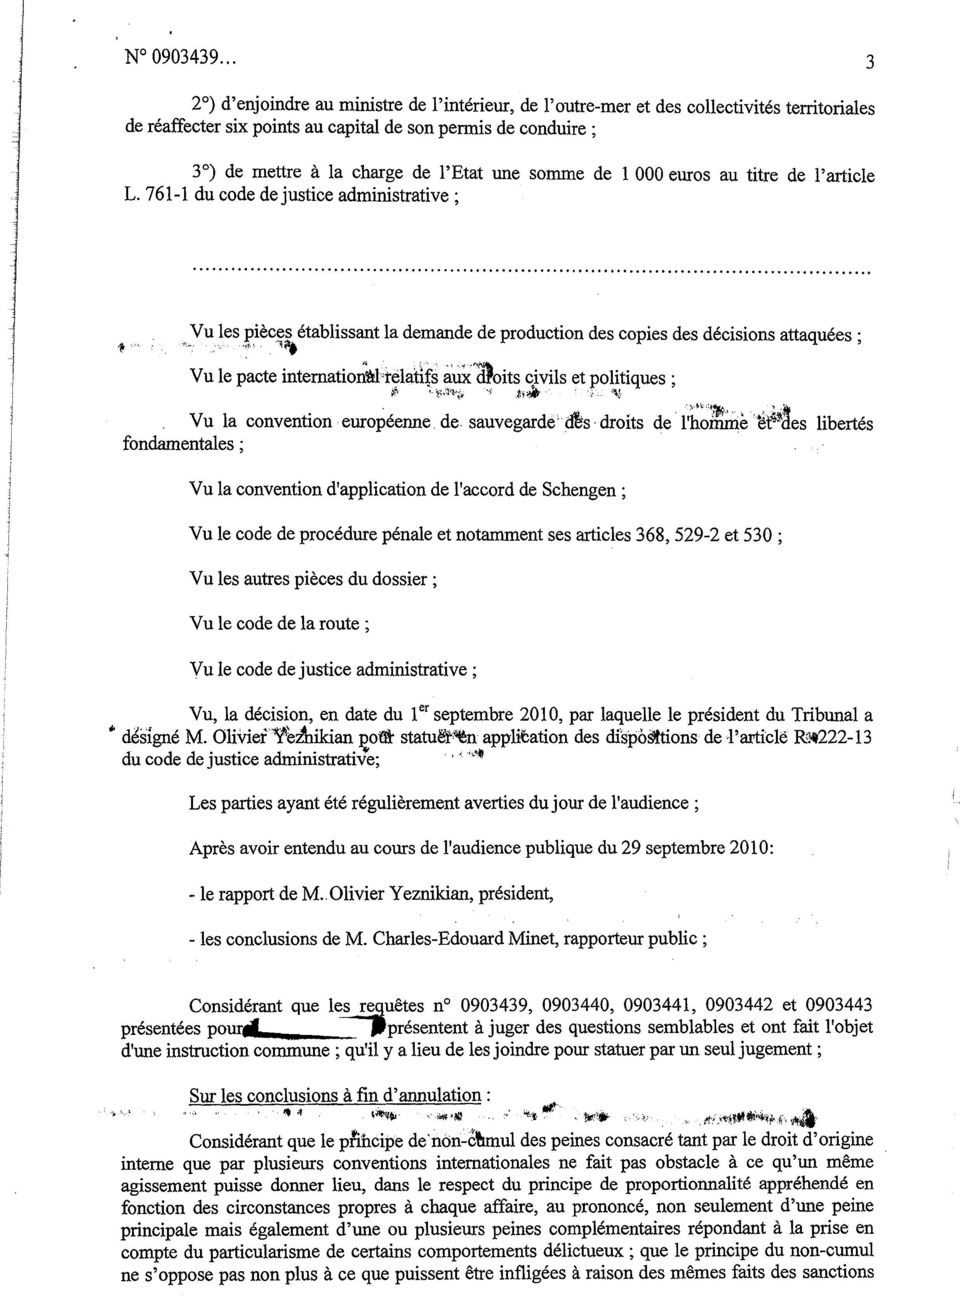 doits civils et politiques ; z Vu la convention européenne de sauvegarde dis droits de 1 homme tes libertés fondamentales ; Vu la convention d'application de l'accord de Schengen ; Vu le code de